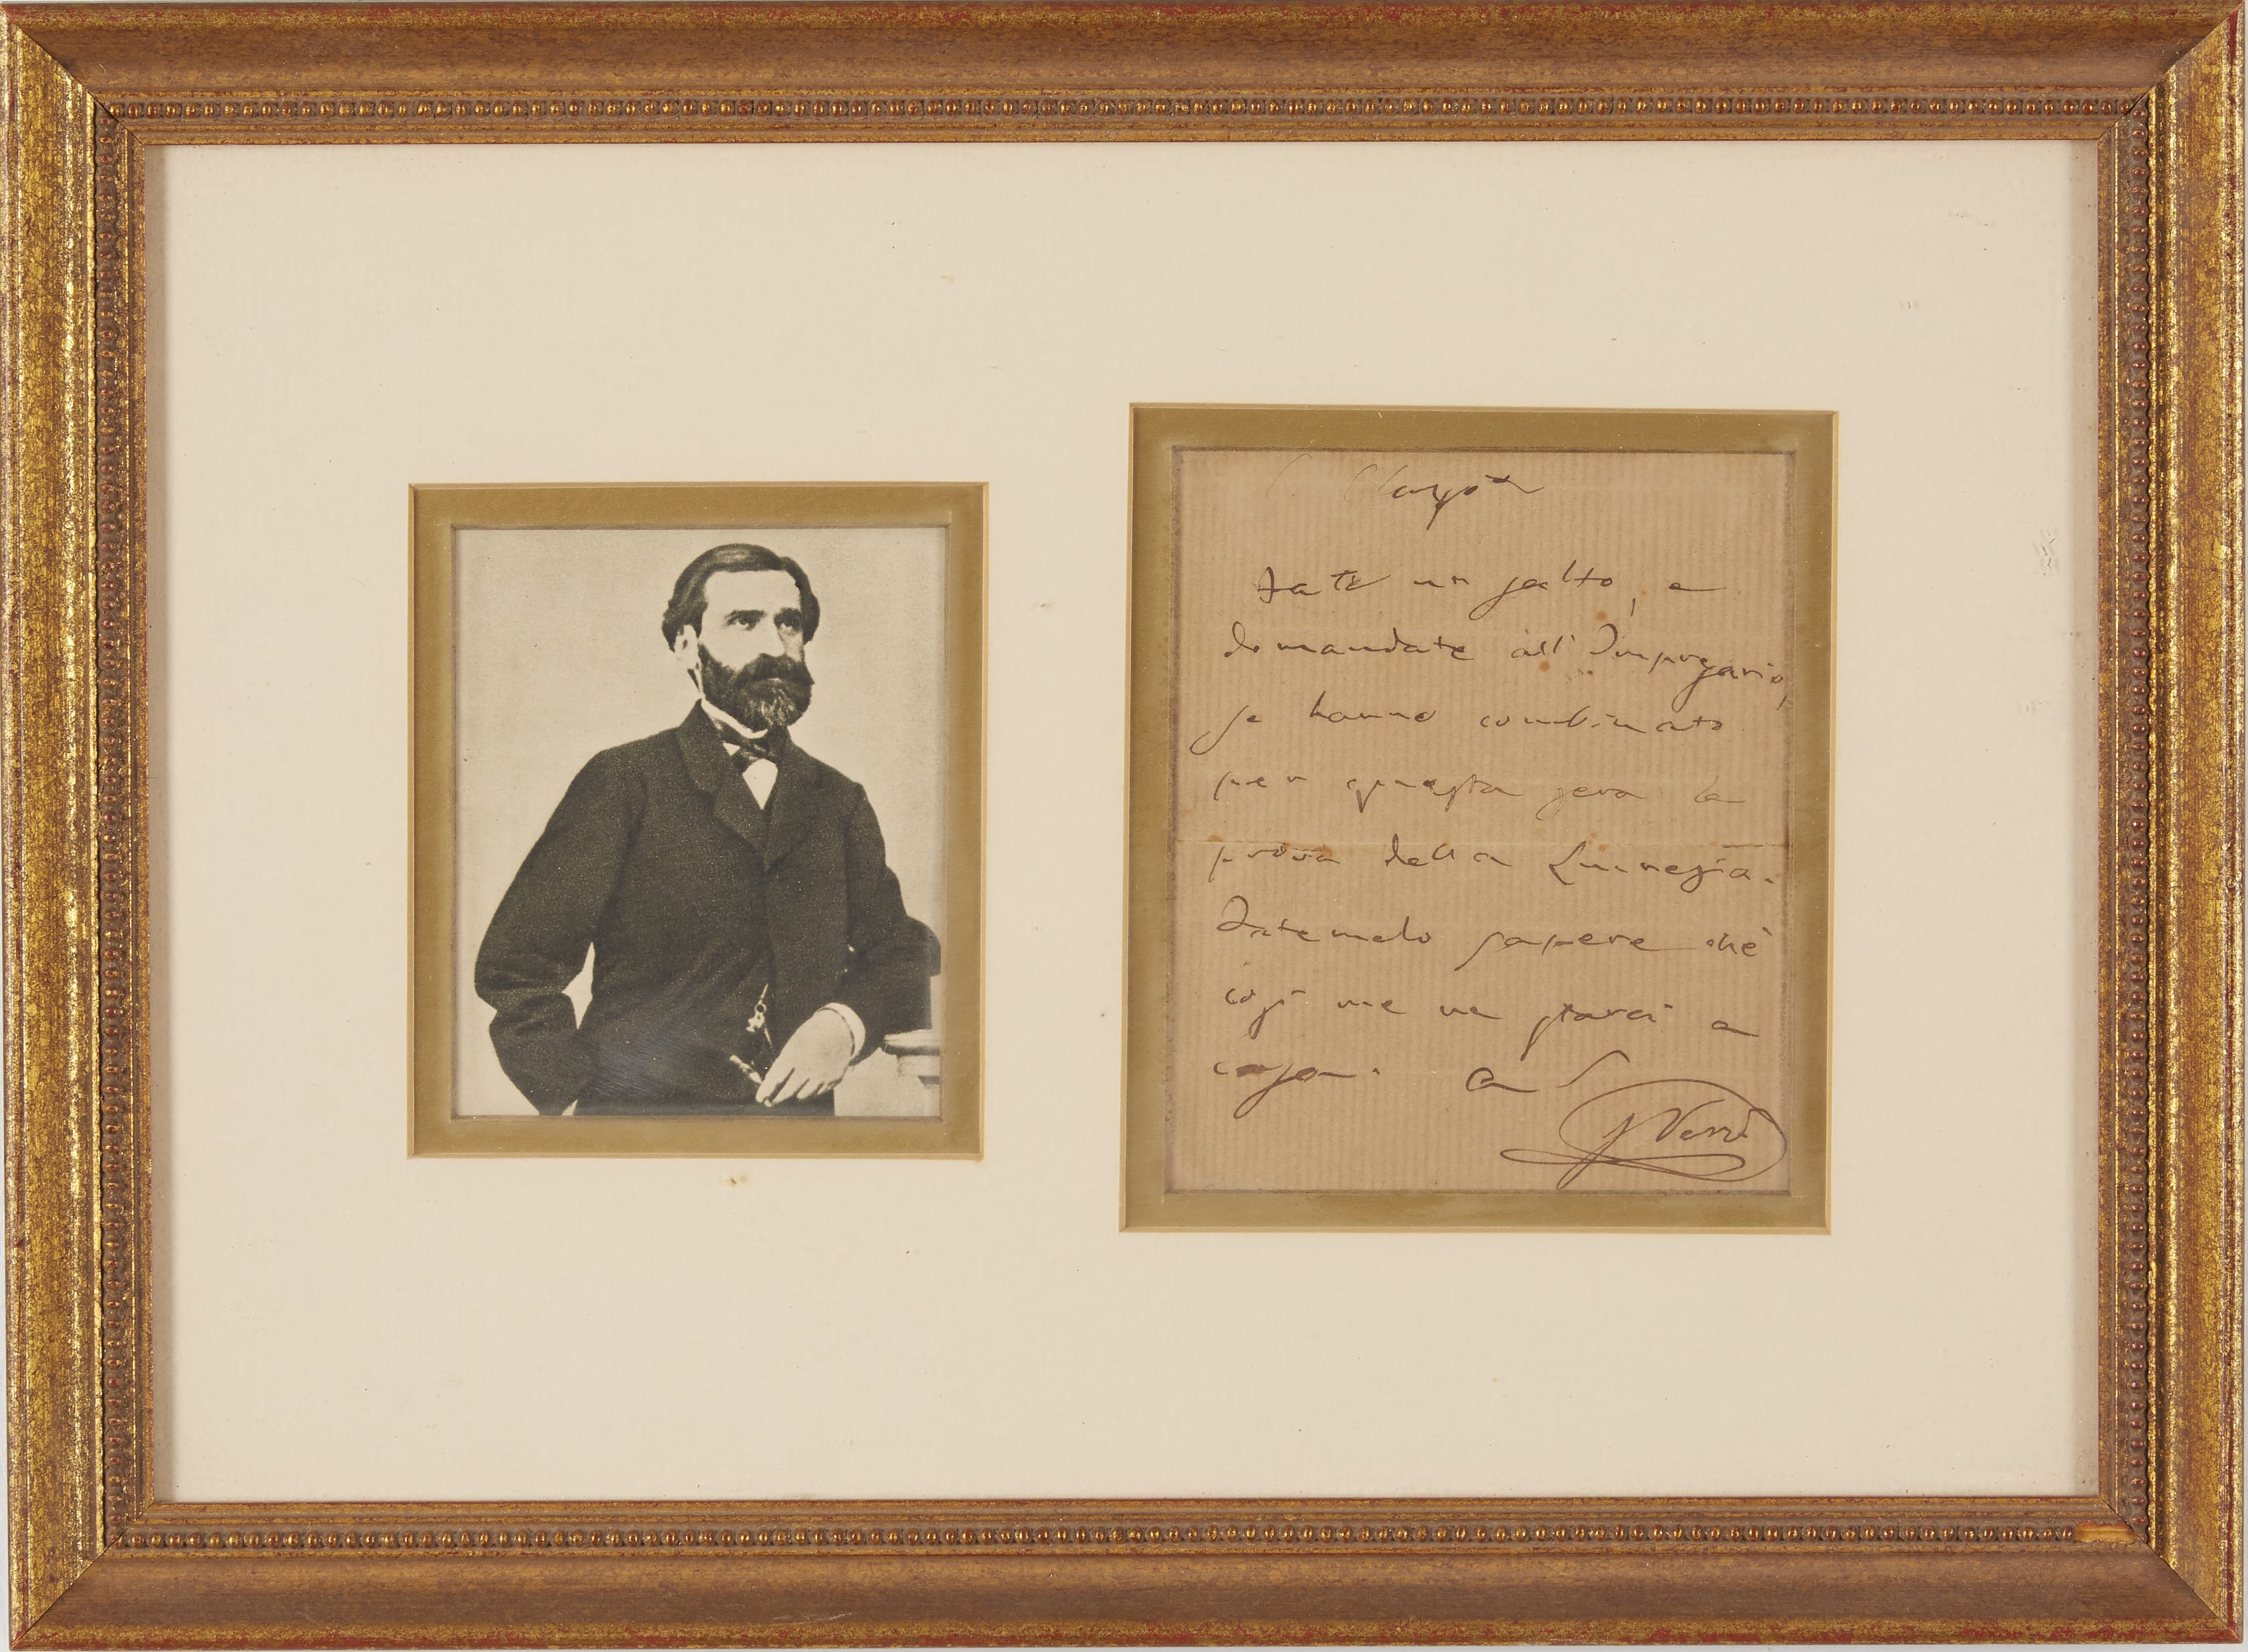 Lot 139: One Verdi Signed Letter